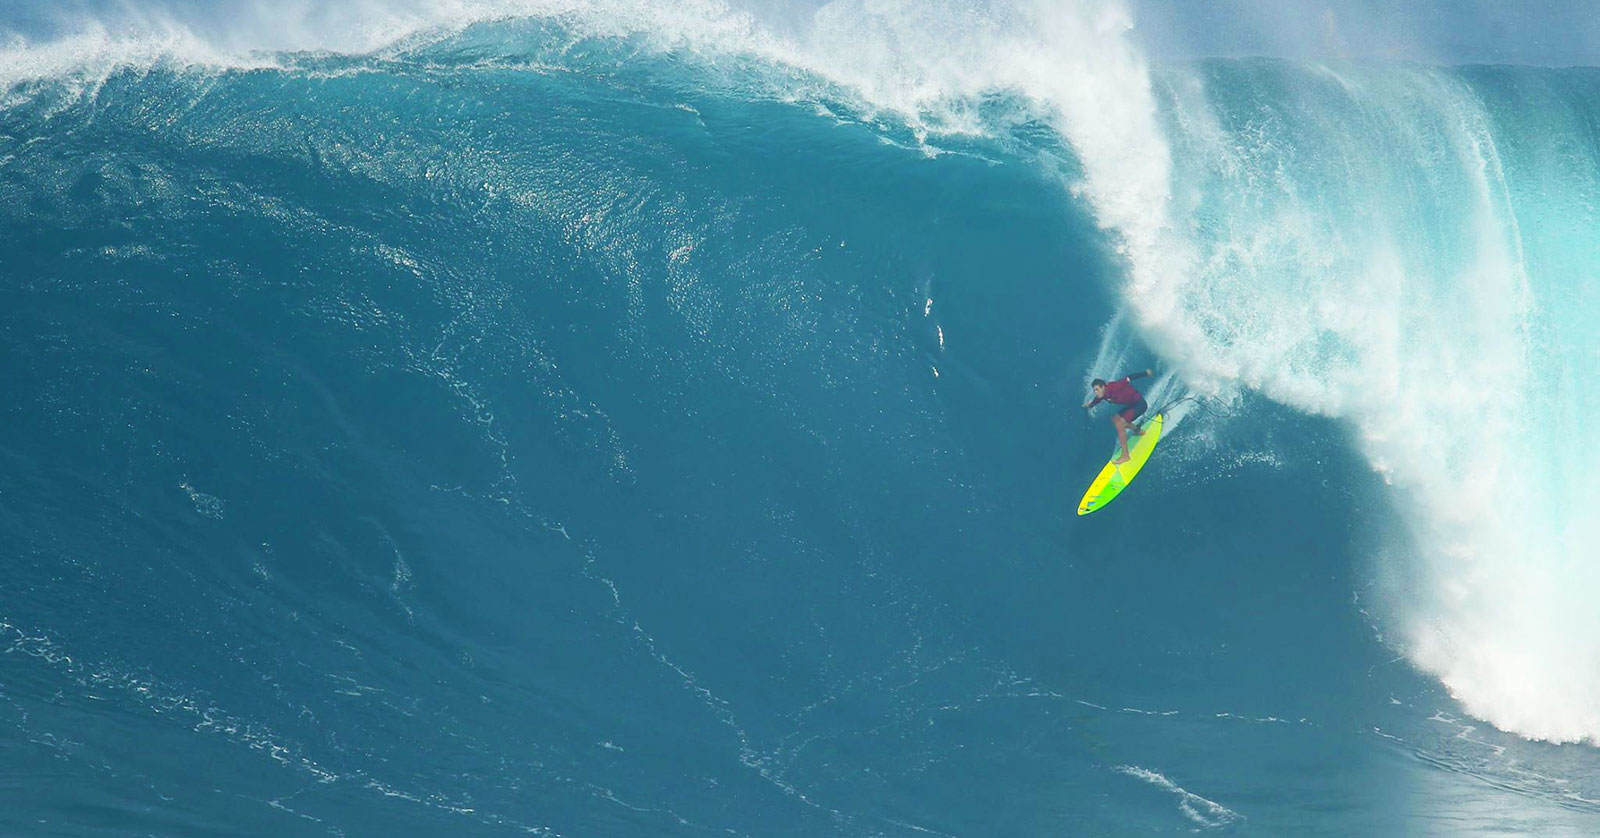 PHOTOS Worlds Top SUP Athletes Surfing Crazy Big Waves